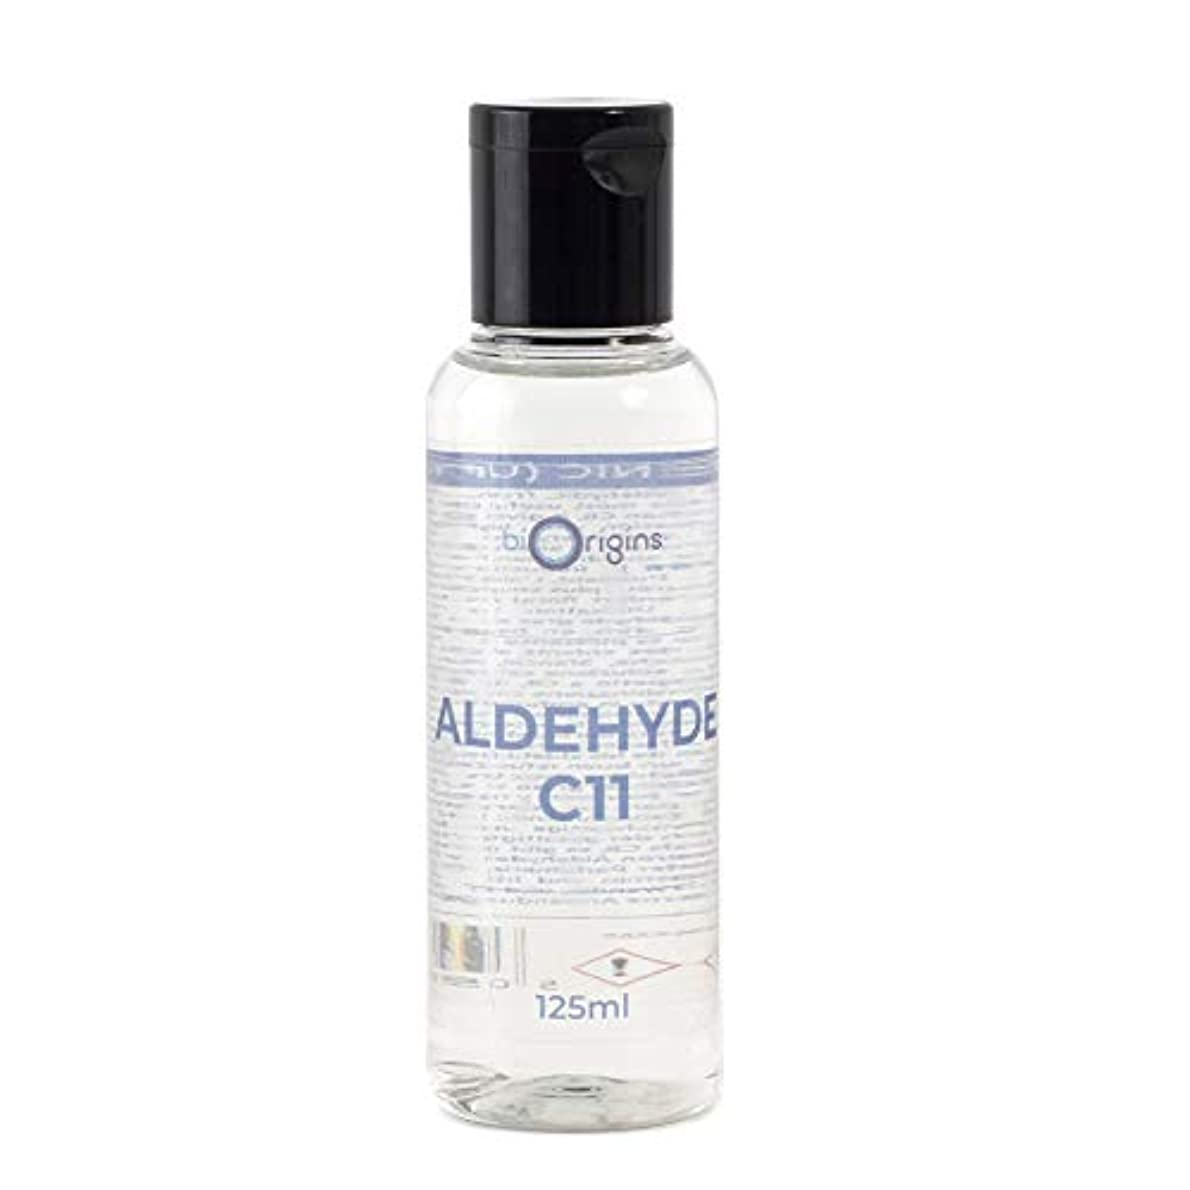 ステープル縁石なんでもMystic Moments | Aldehyde C11 ENIC (Undecenal) - 125ml